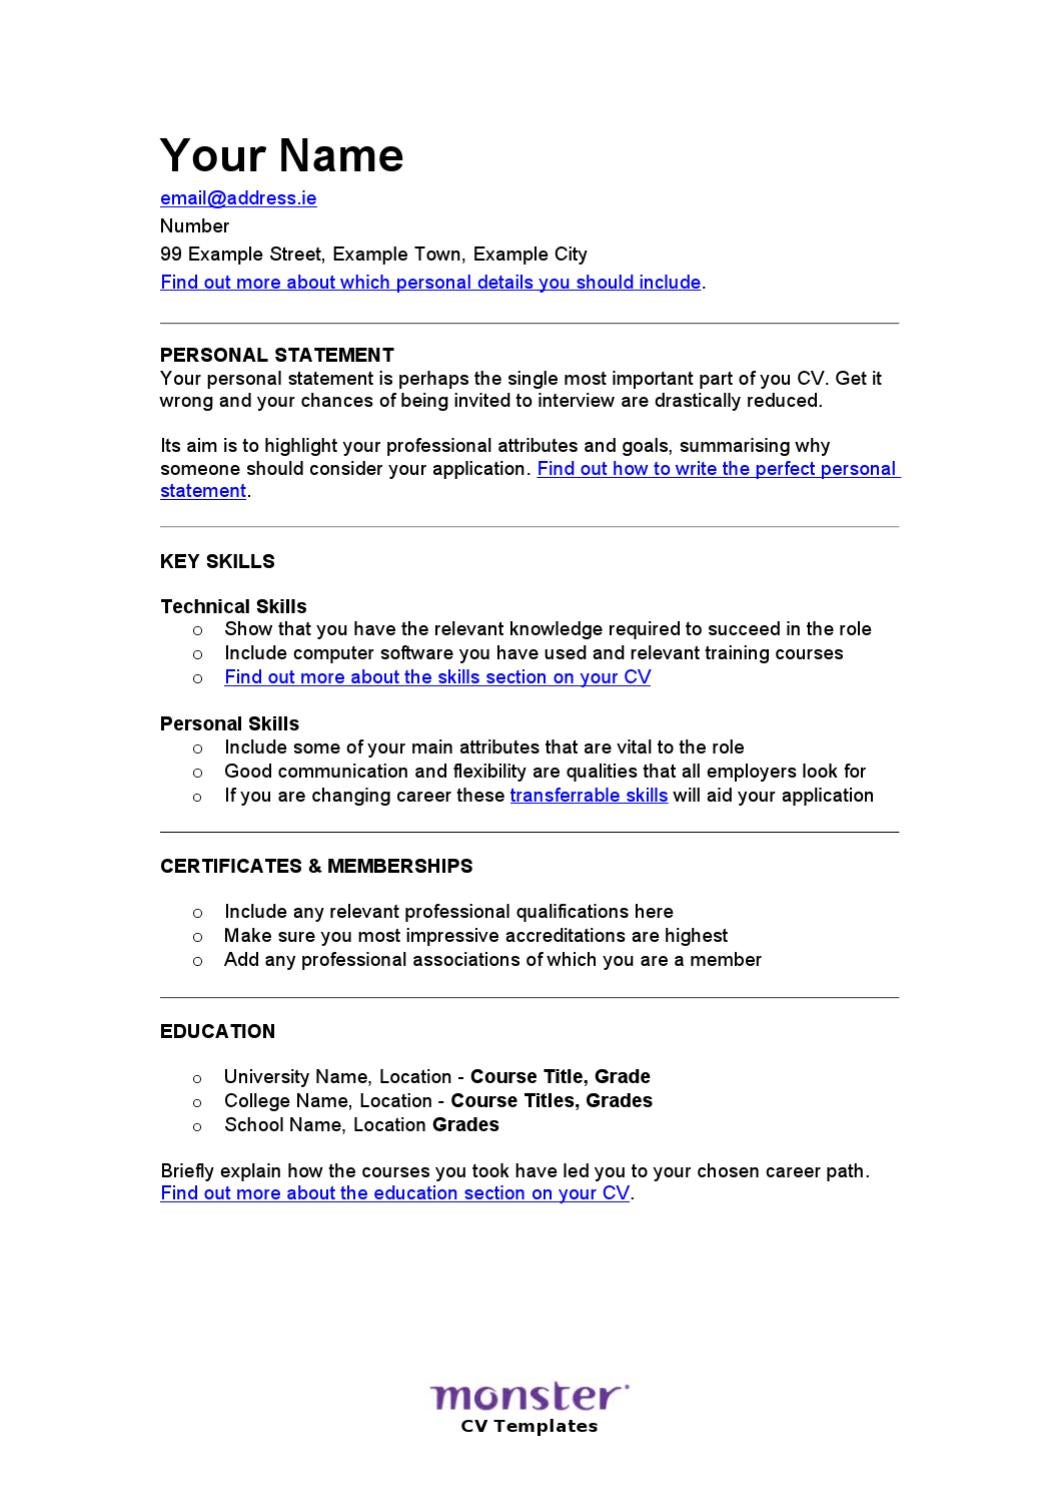 examples of professional resumes    monster resume writing service review SP ZOZ   ukowo